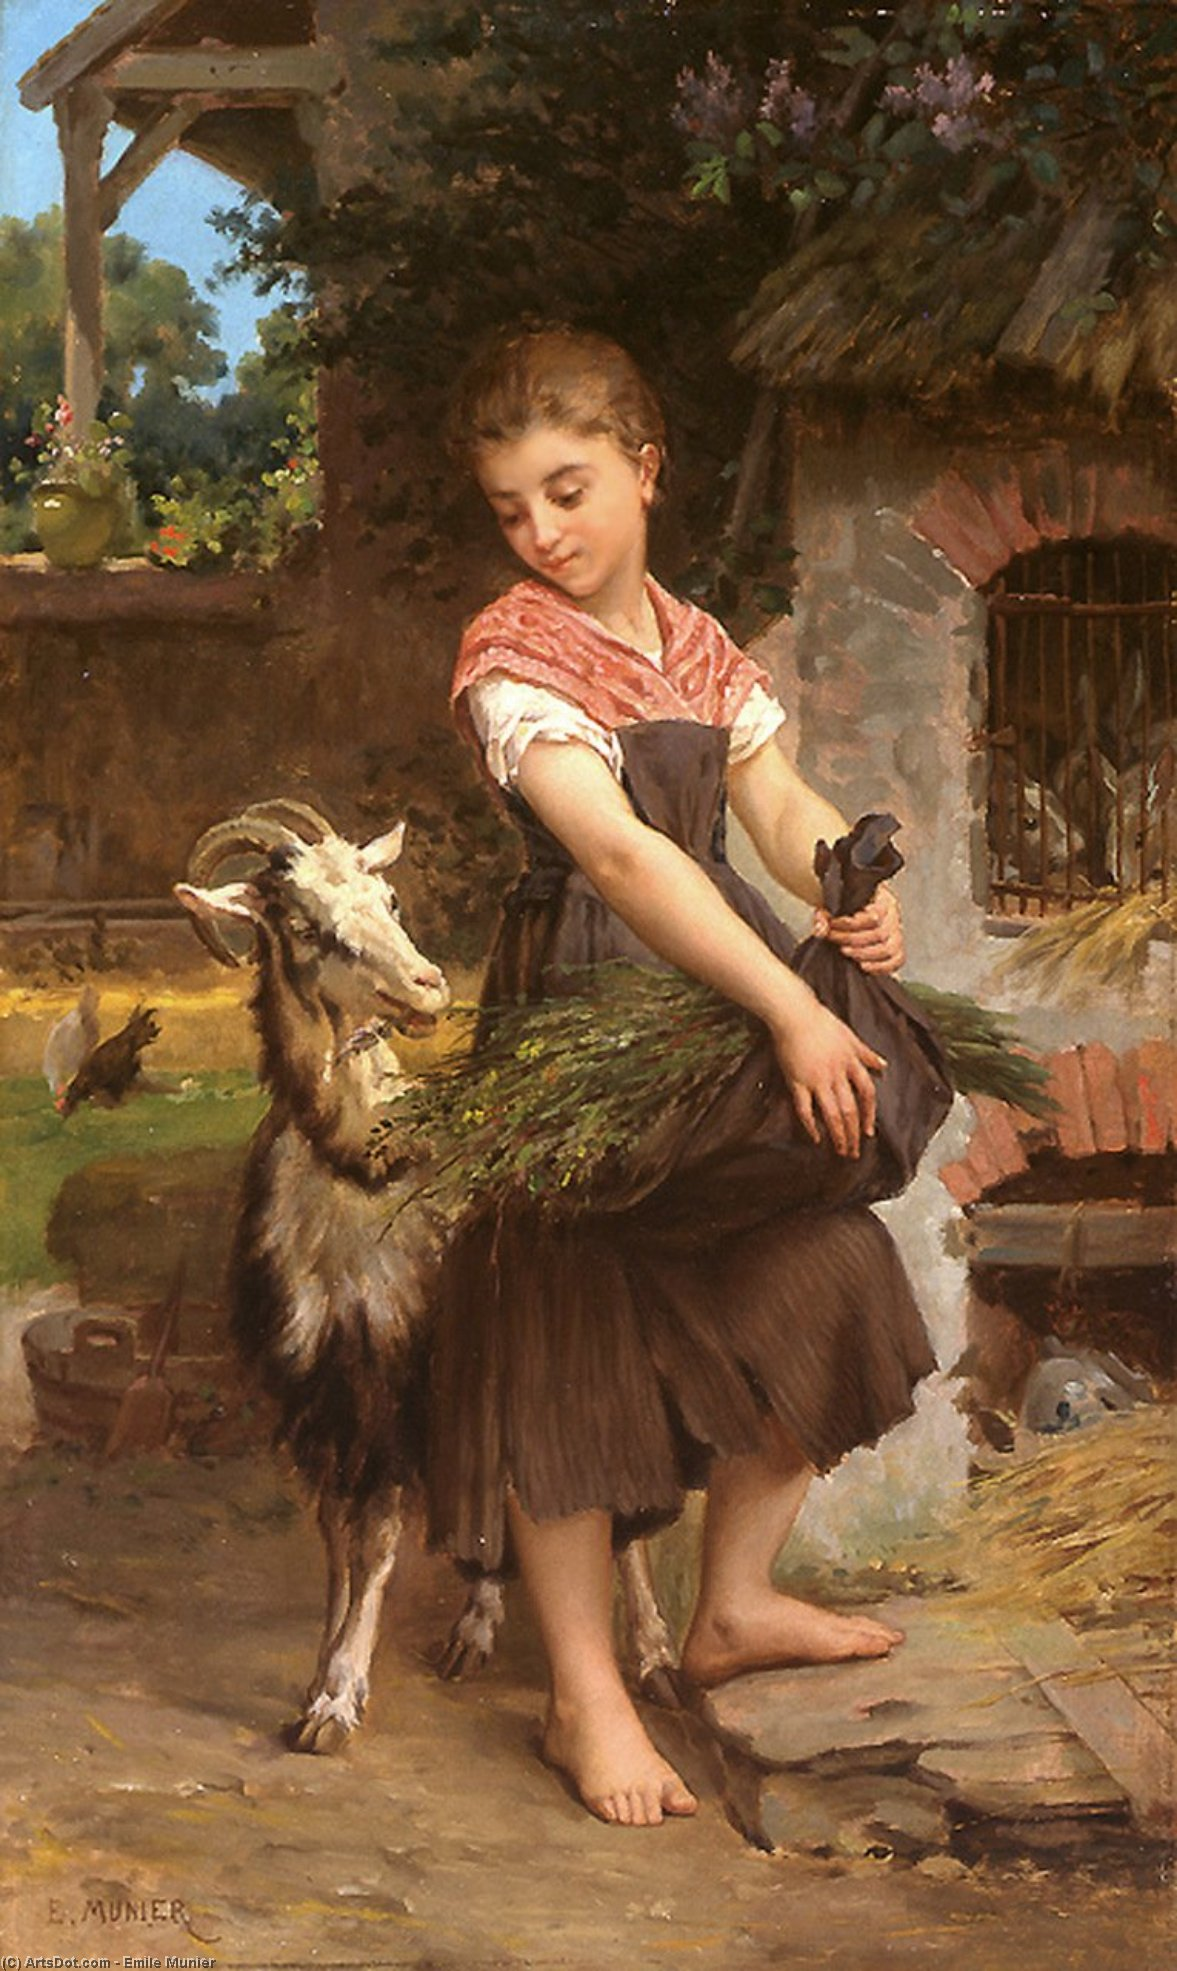 Farm Girl with her Pet Billy Goat by Emile Munier (1840-1895, France)